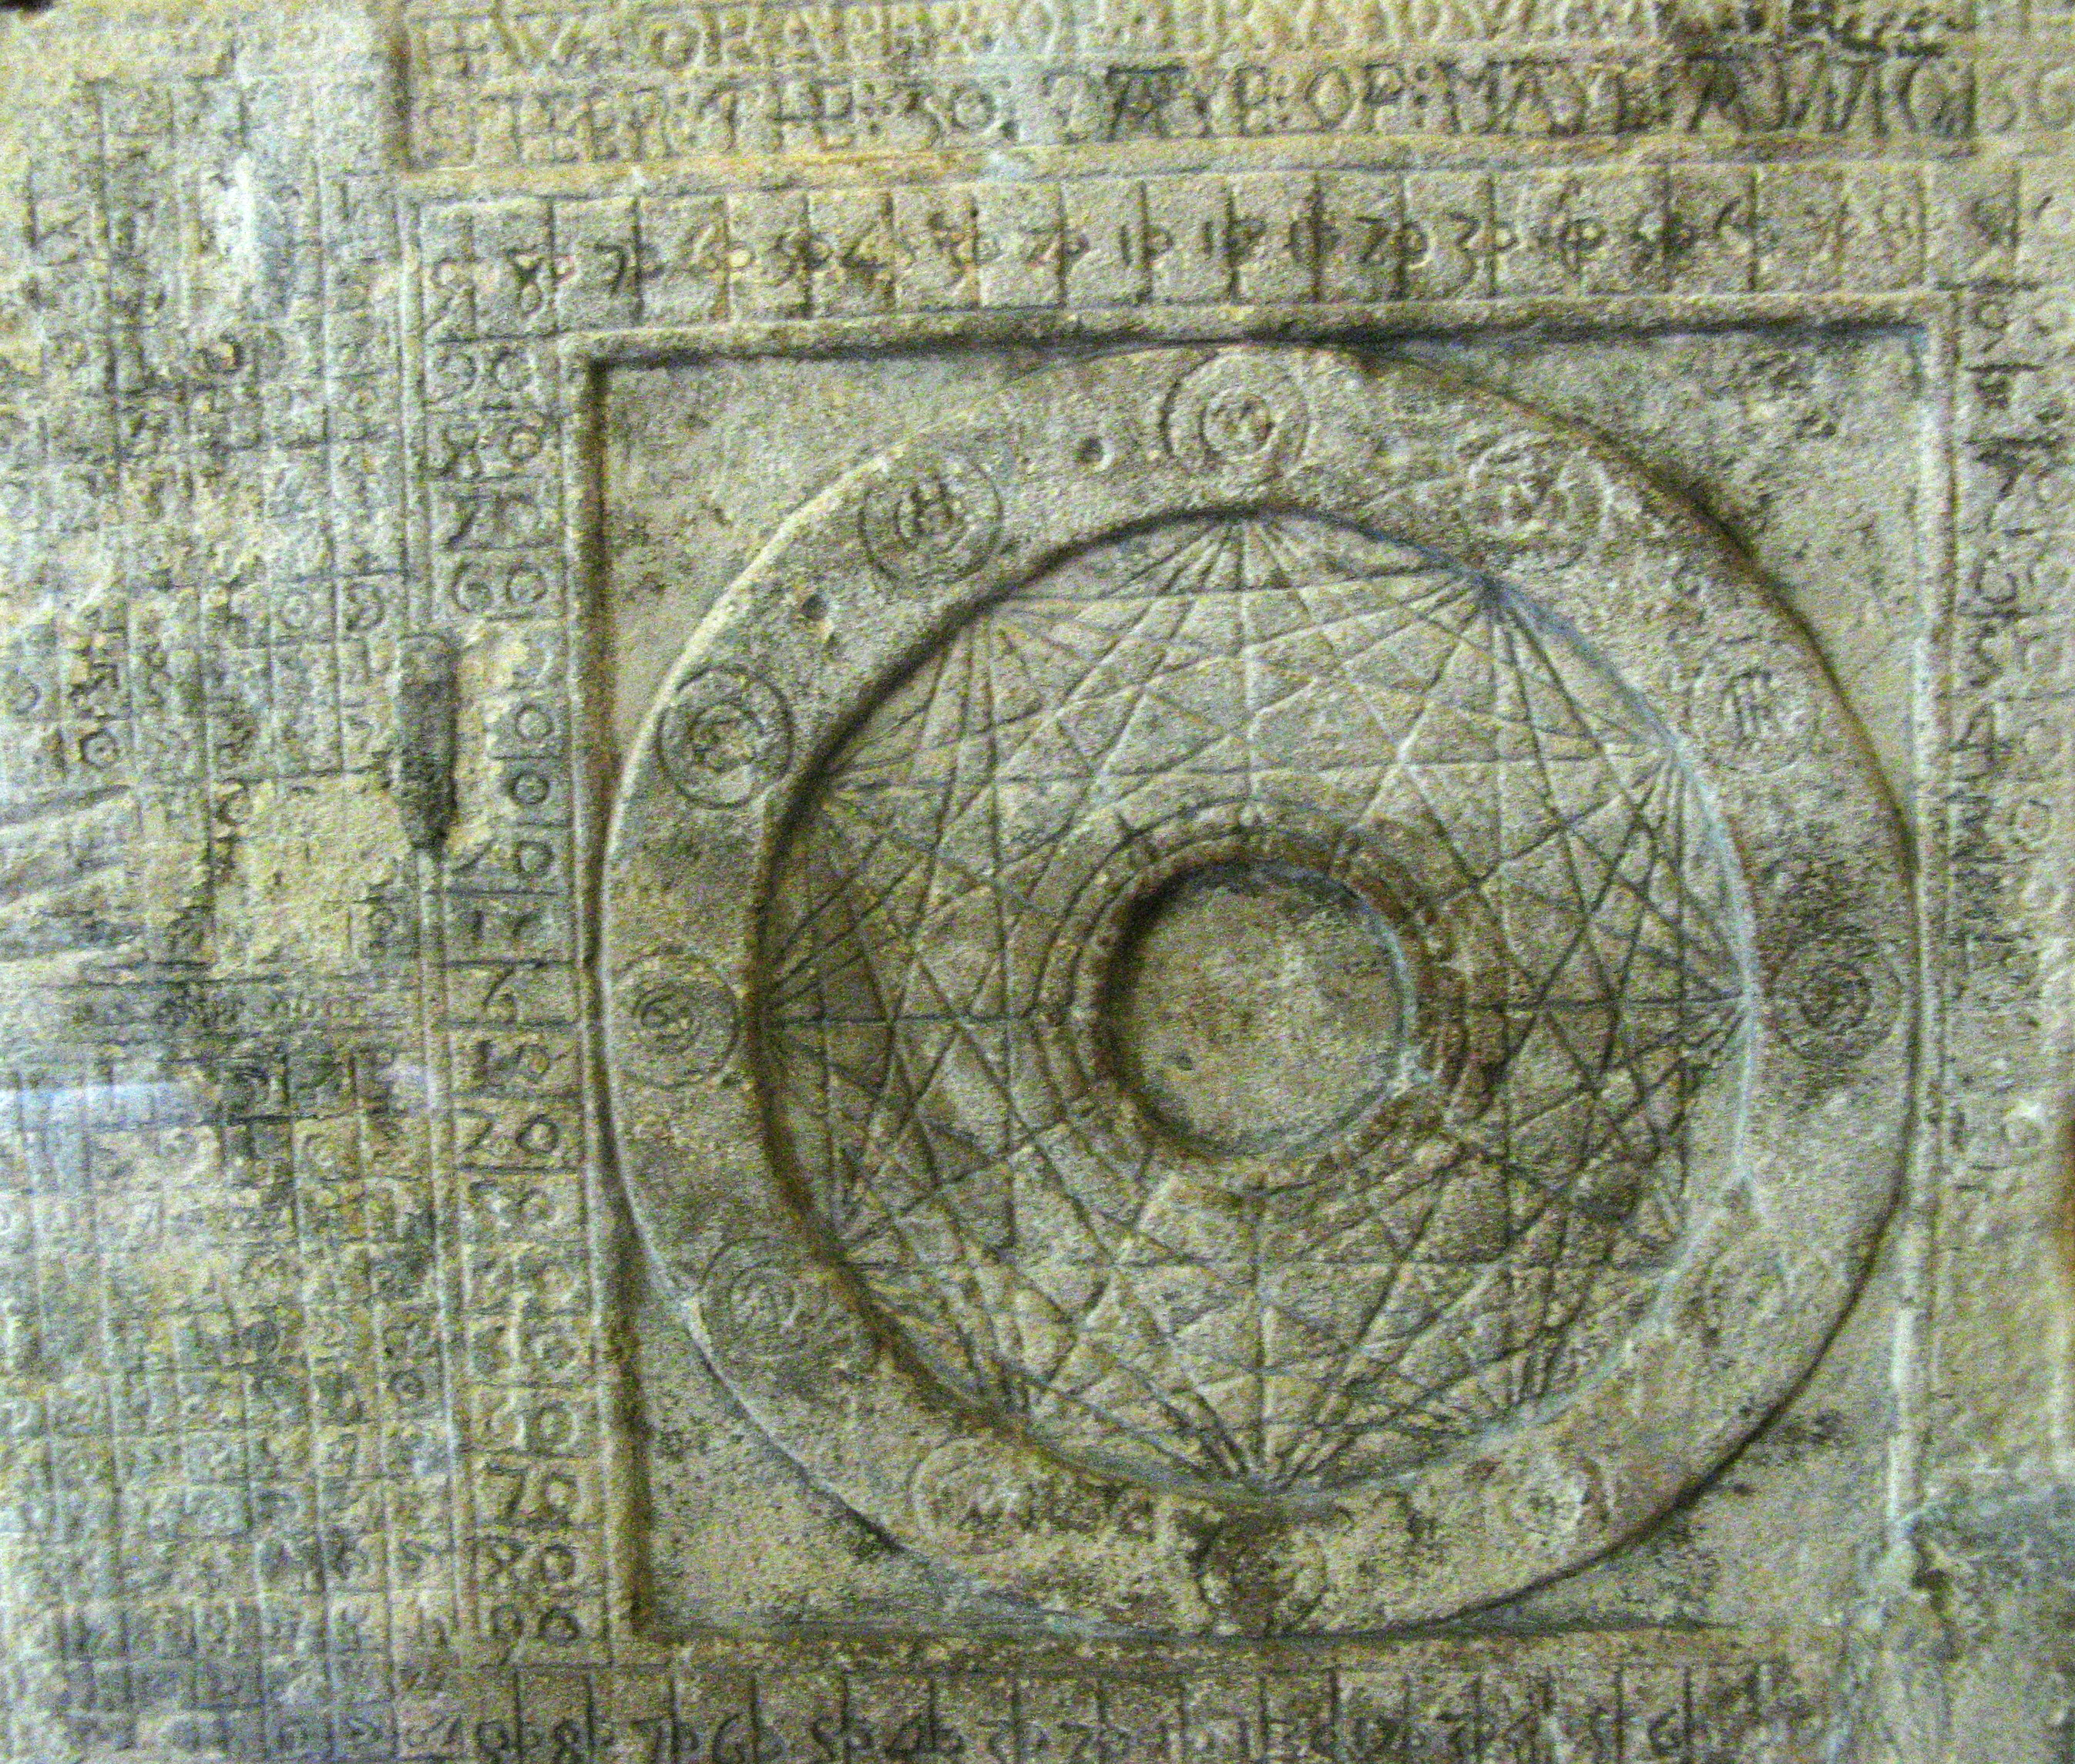 A photograph of Hew Draper's Astronomical Sphere, which has been carved into a stone wall in the Salt Tower